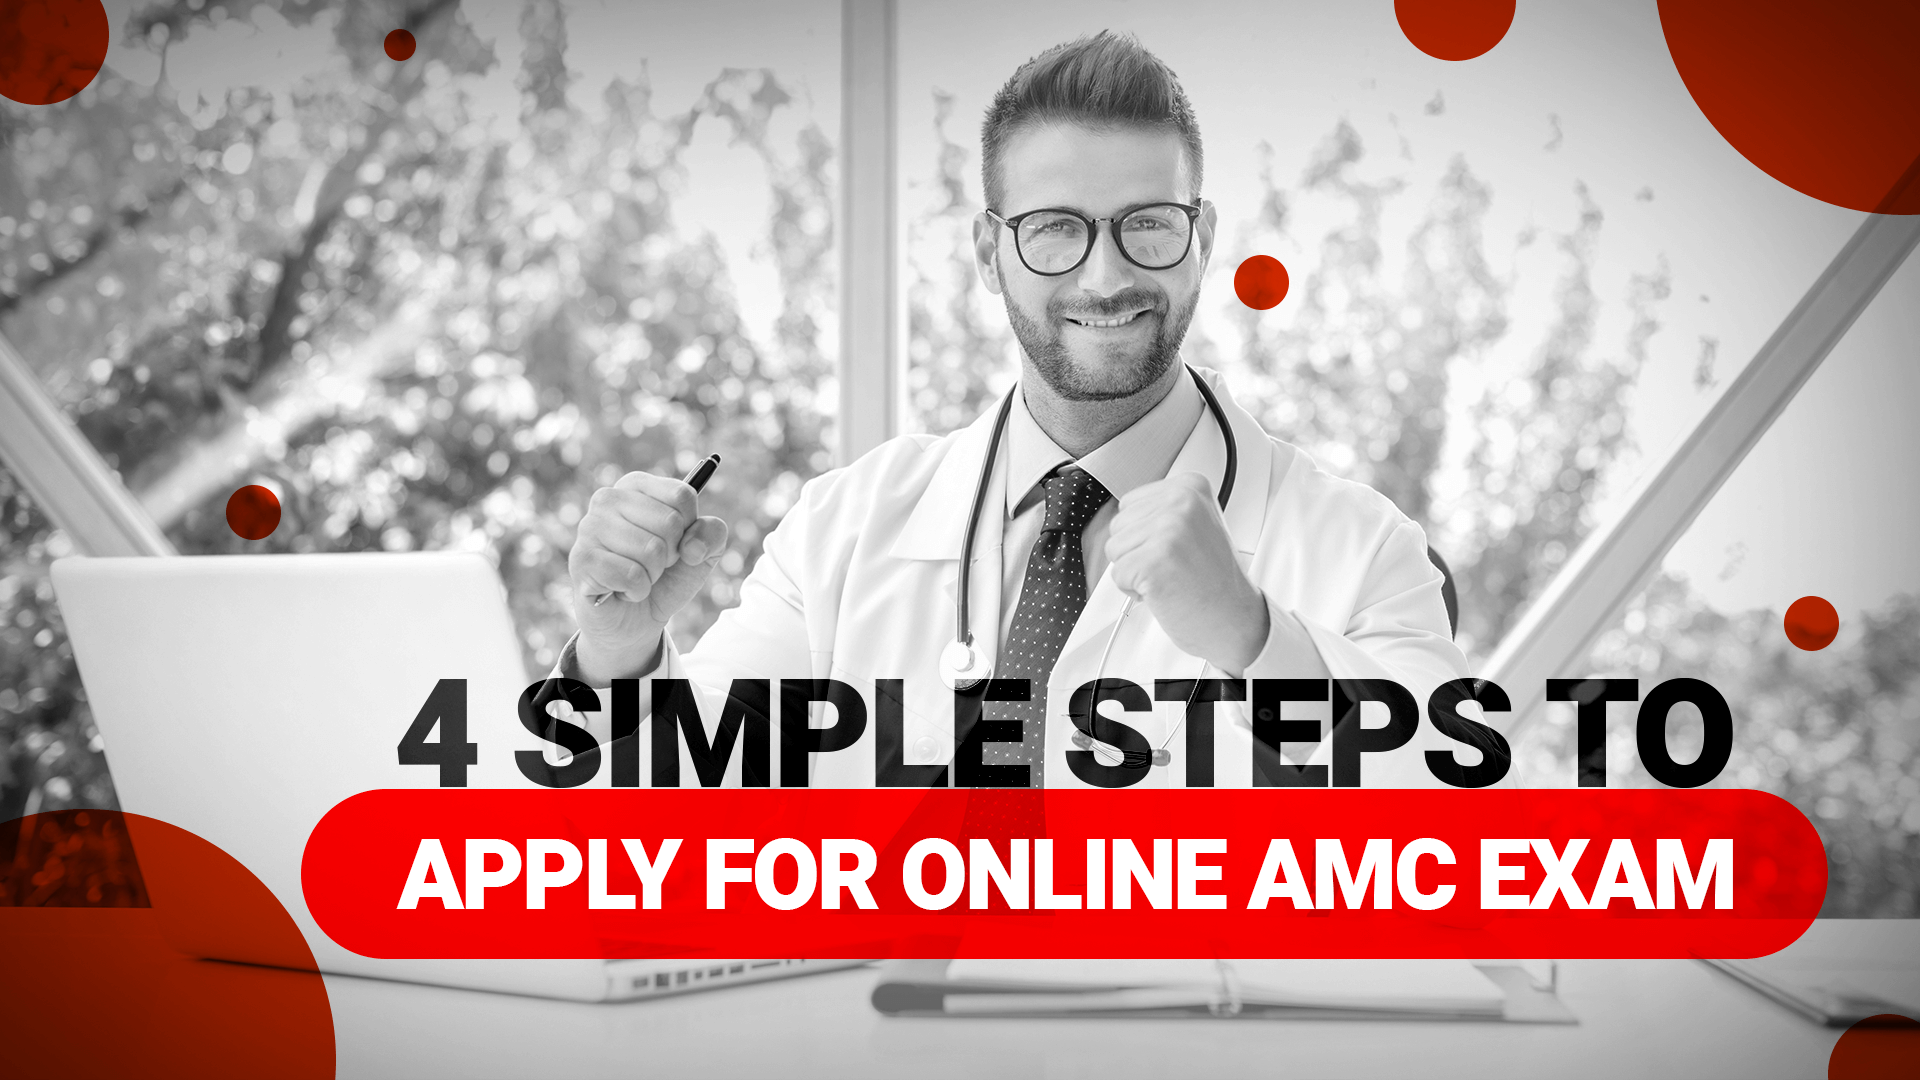 How You Apply For Online AMC Exam With Simple 4 Steps